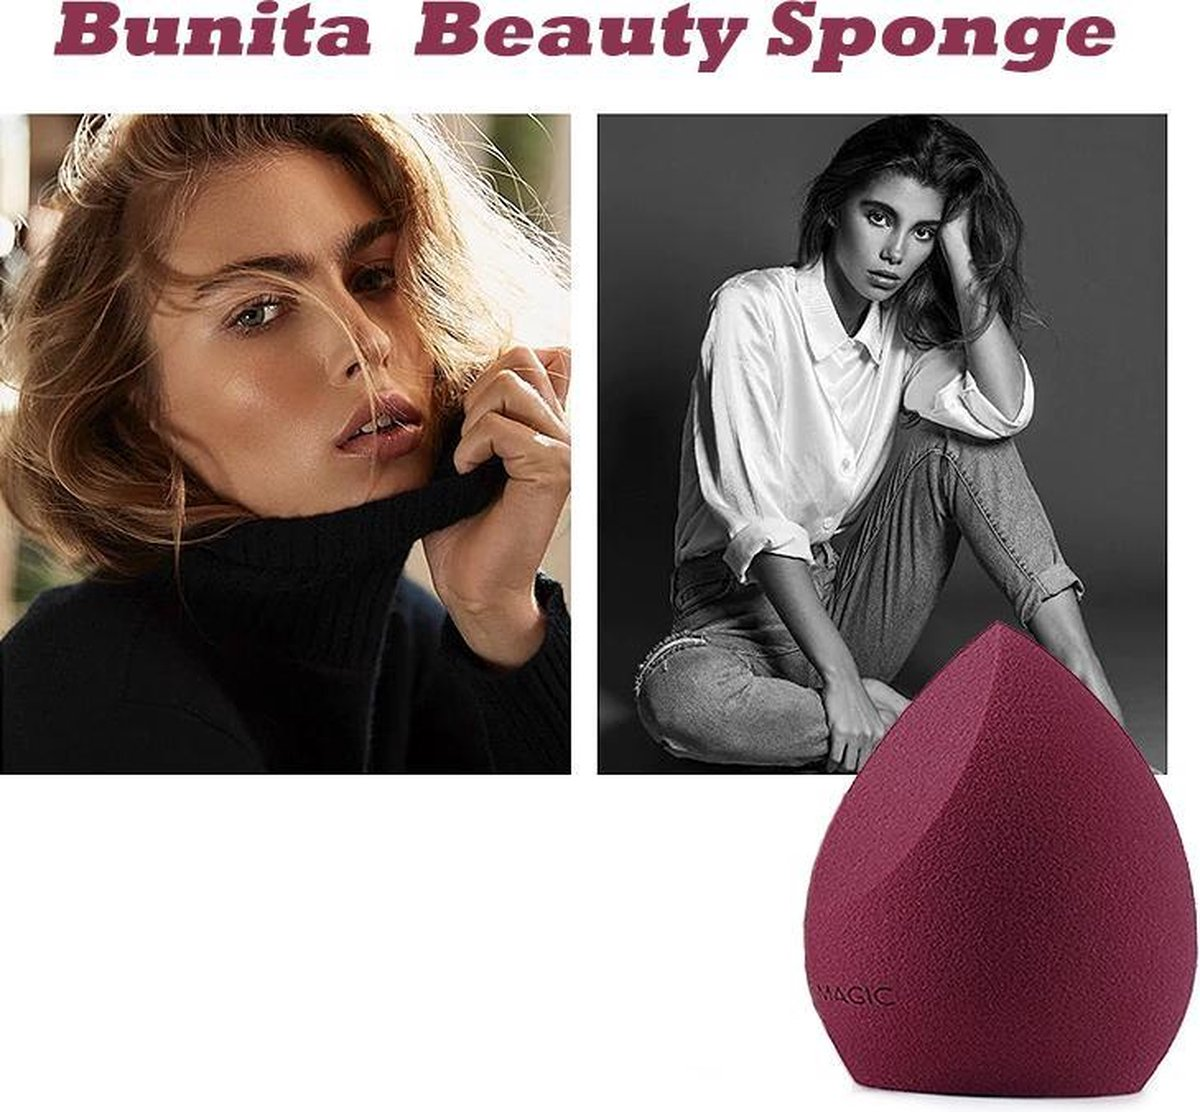 Makeup Sponge - Cosmetic Foundation Puff - Make-up Concealer Cream Soft Sponge - Make Up Spons - Blush Make Up Sponge - Makeup Blender - Gezicht Sponsje - Foundation Blender